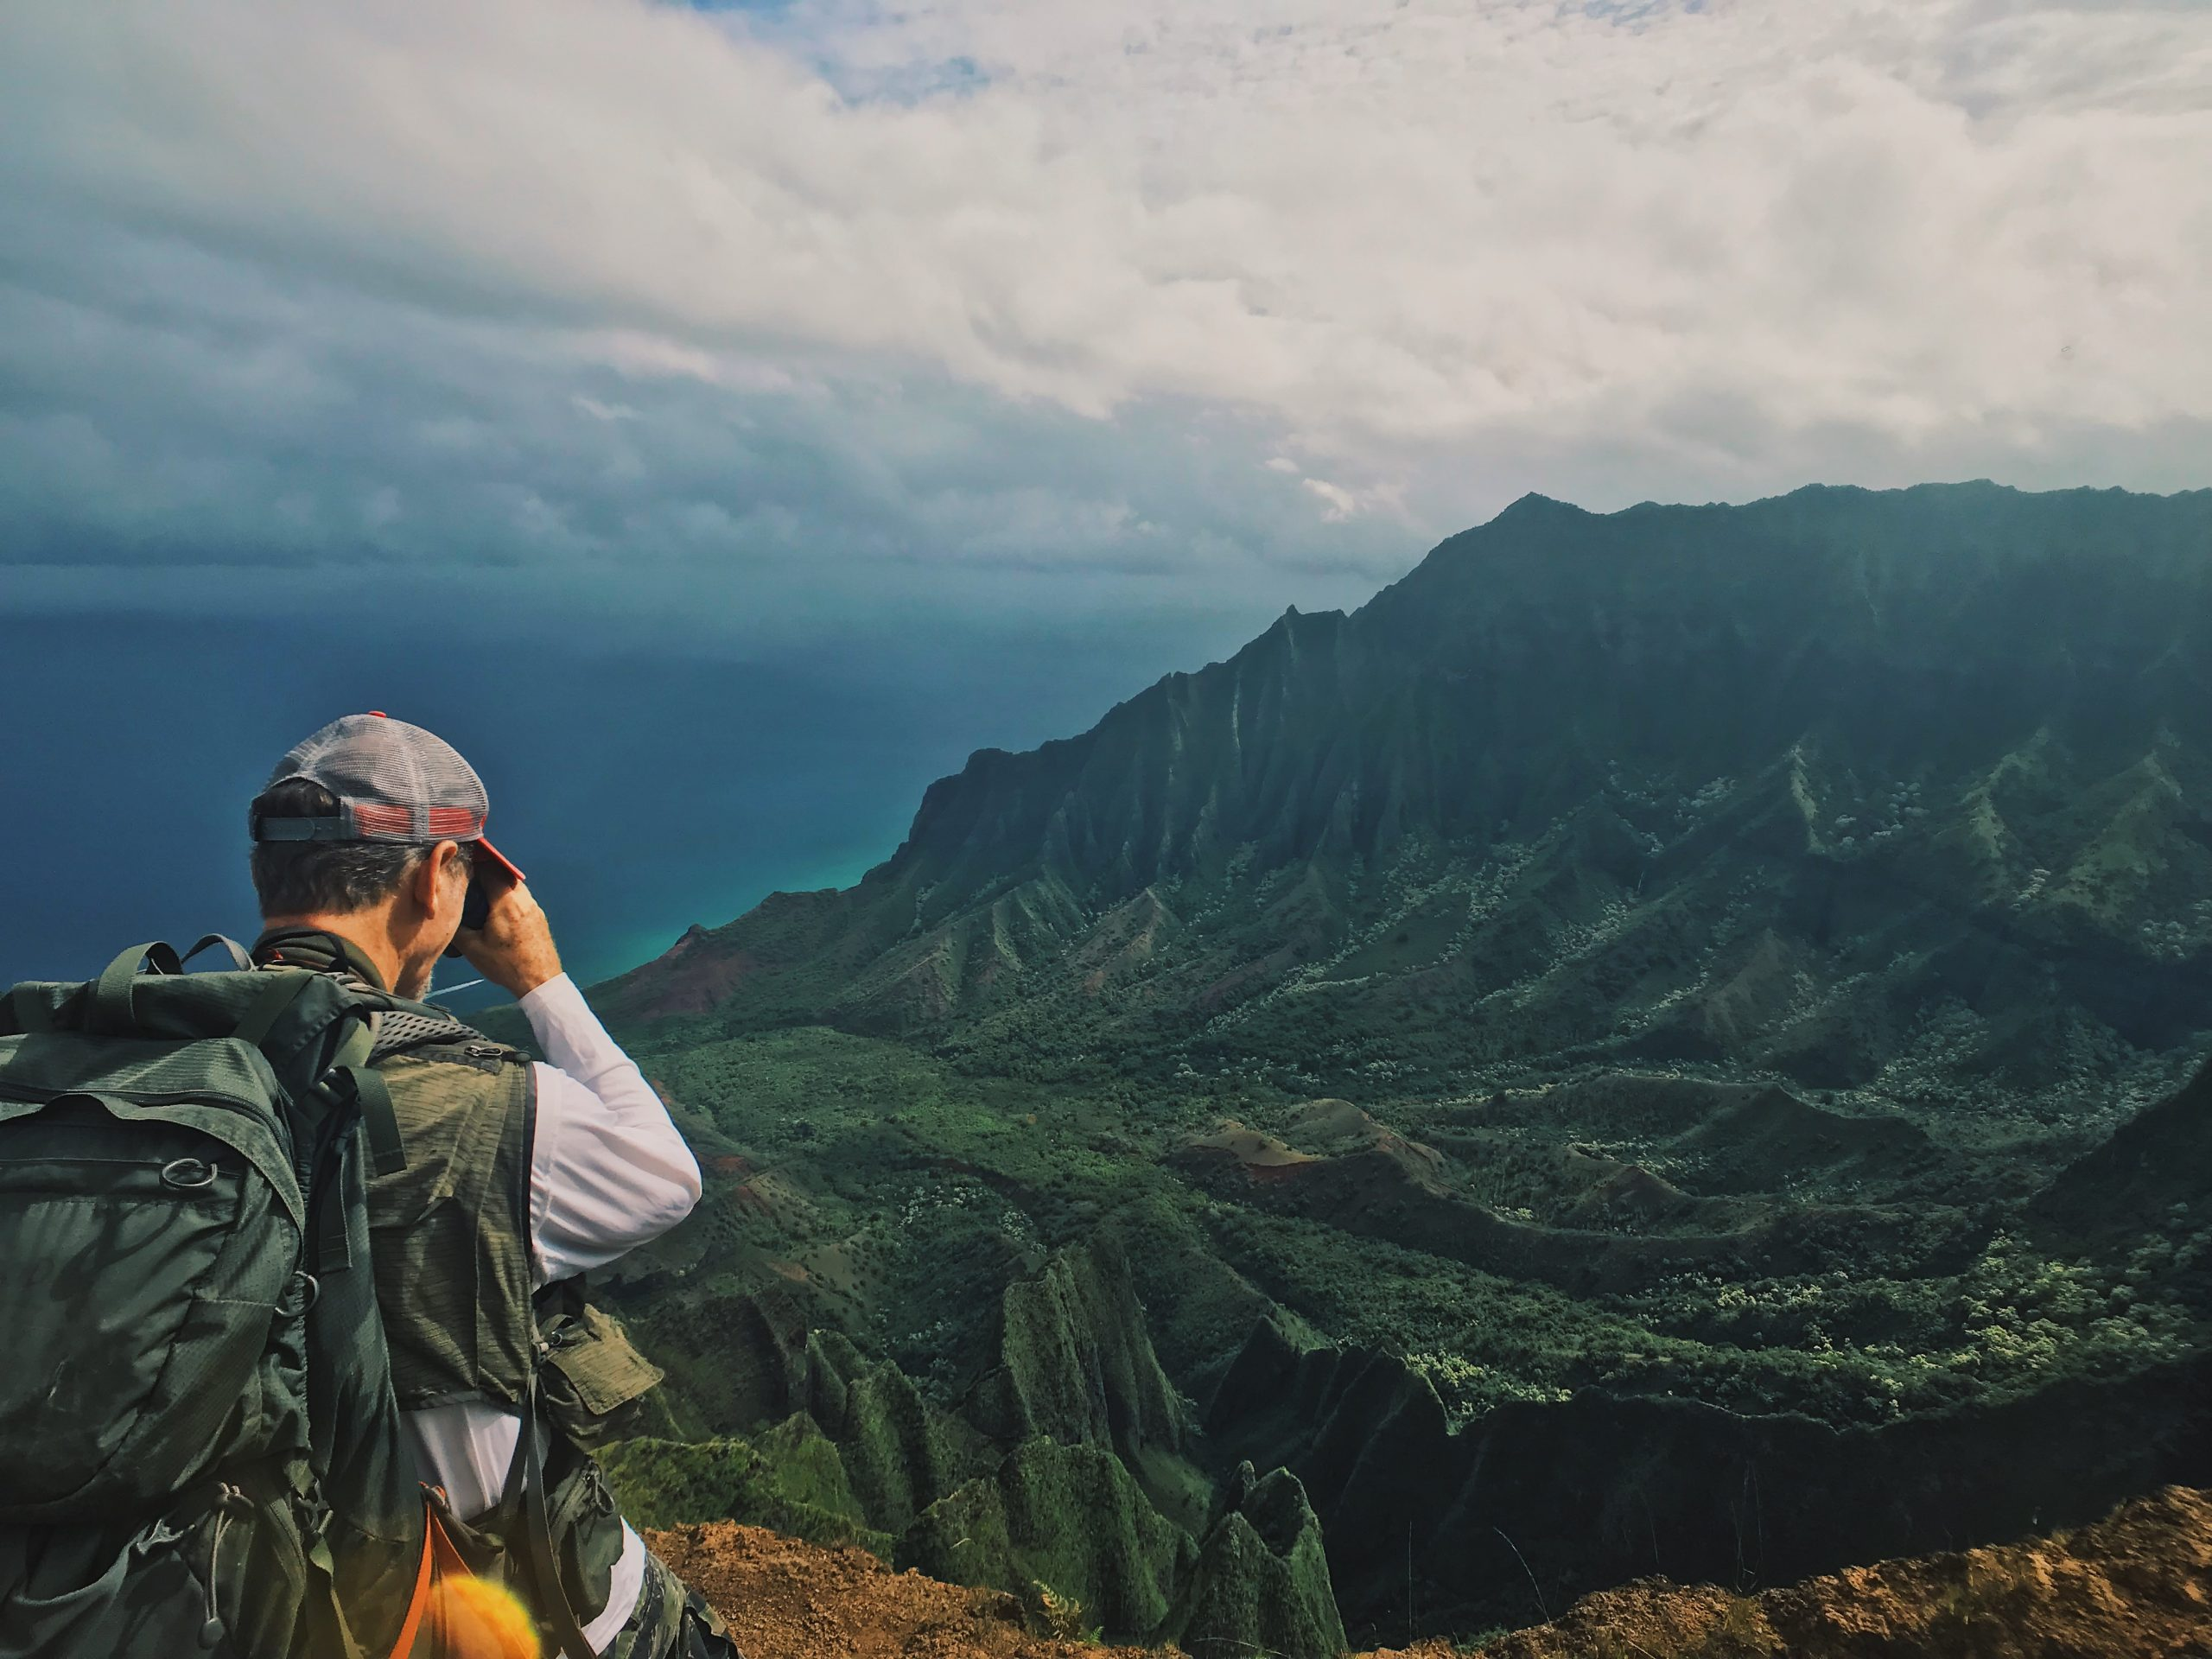 Botanist Ken Wood scopes the rugged terrain of Kaua'i. Even the steepest cliffs can support vegetation, including some rarely seen plant species.